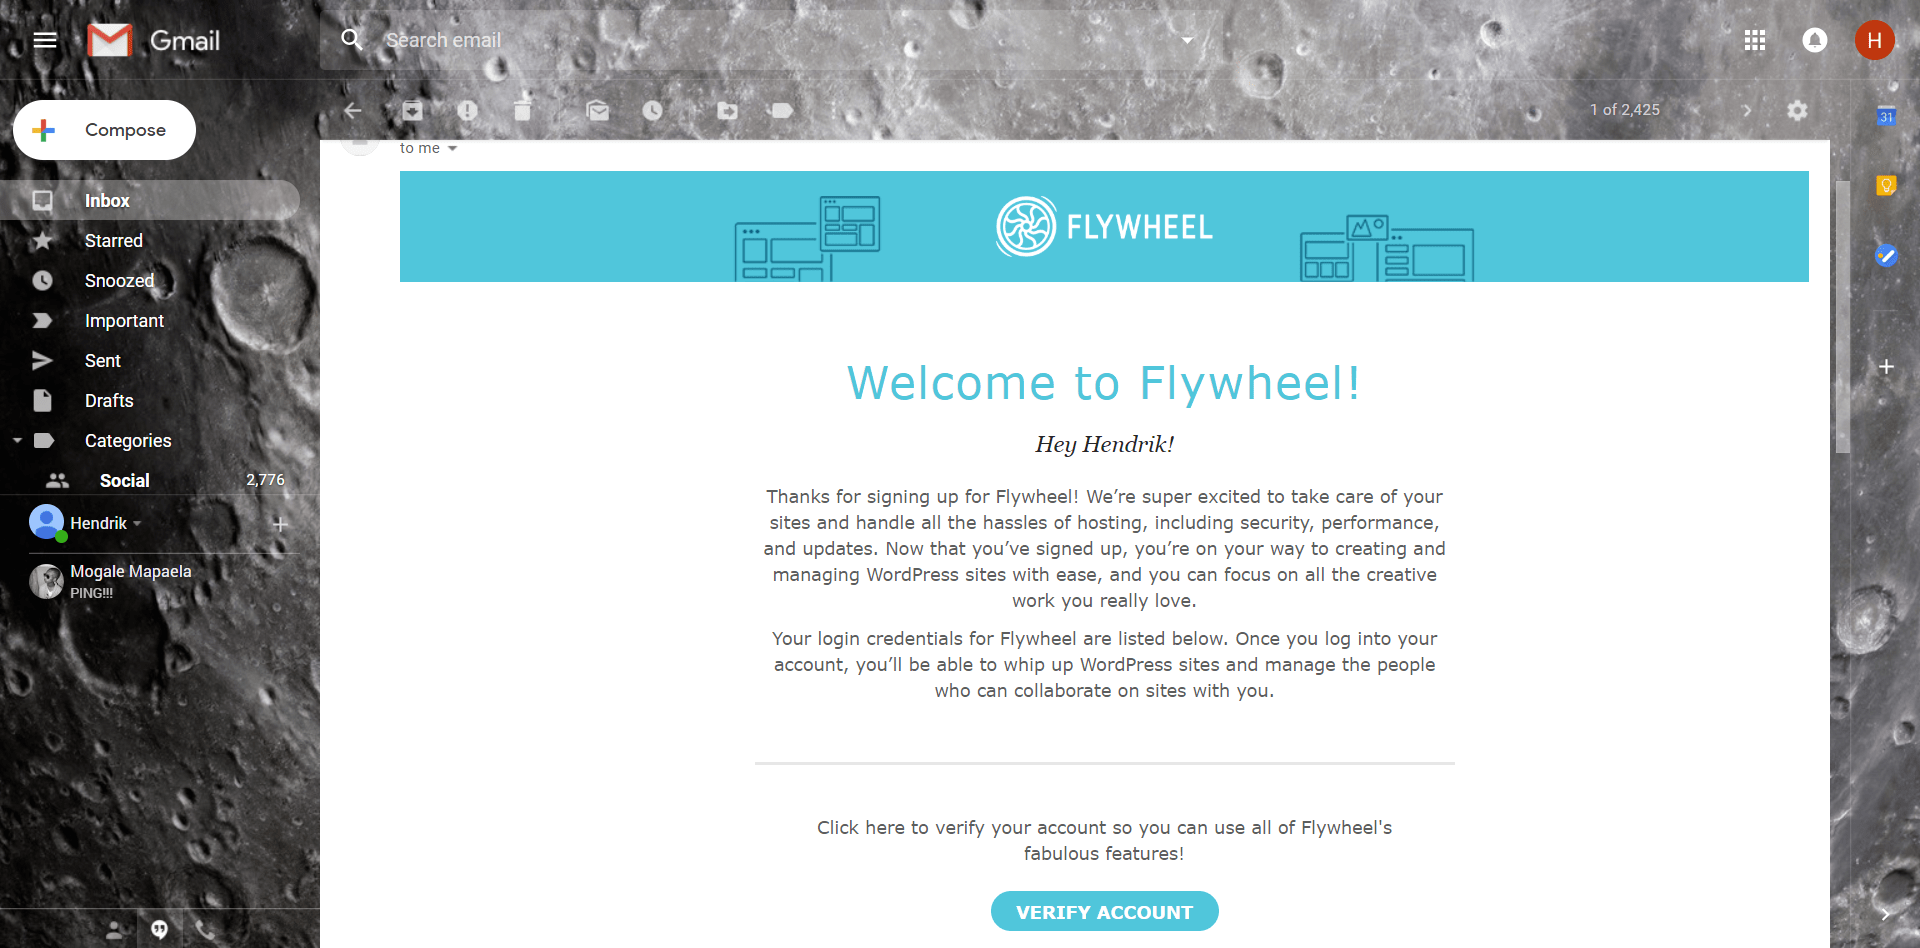 How-to-Create-a-New-Account-with-Flywheel-image2